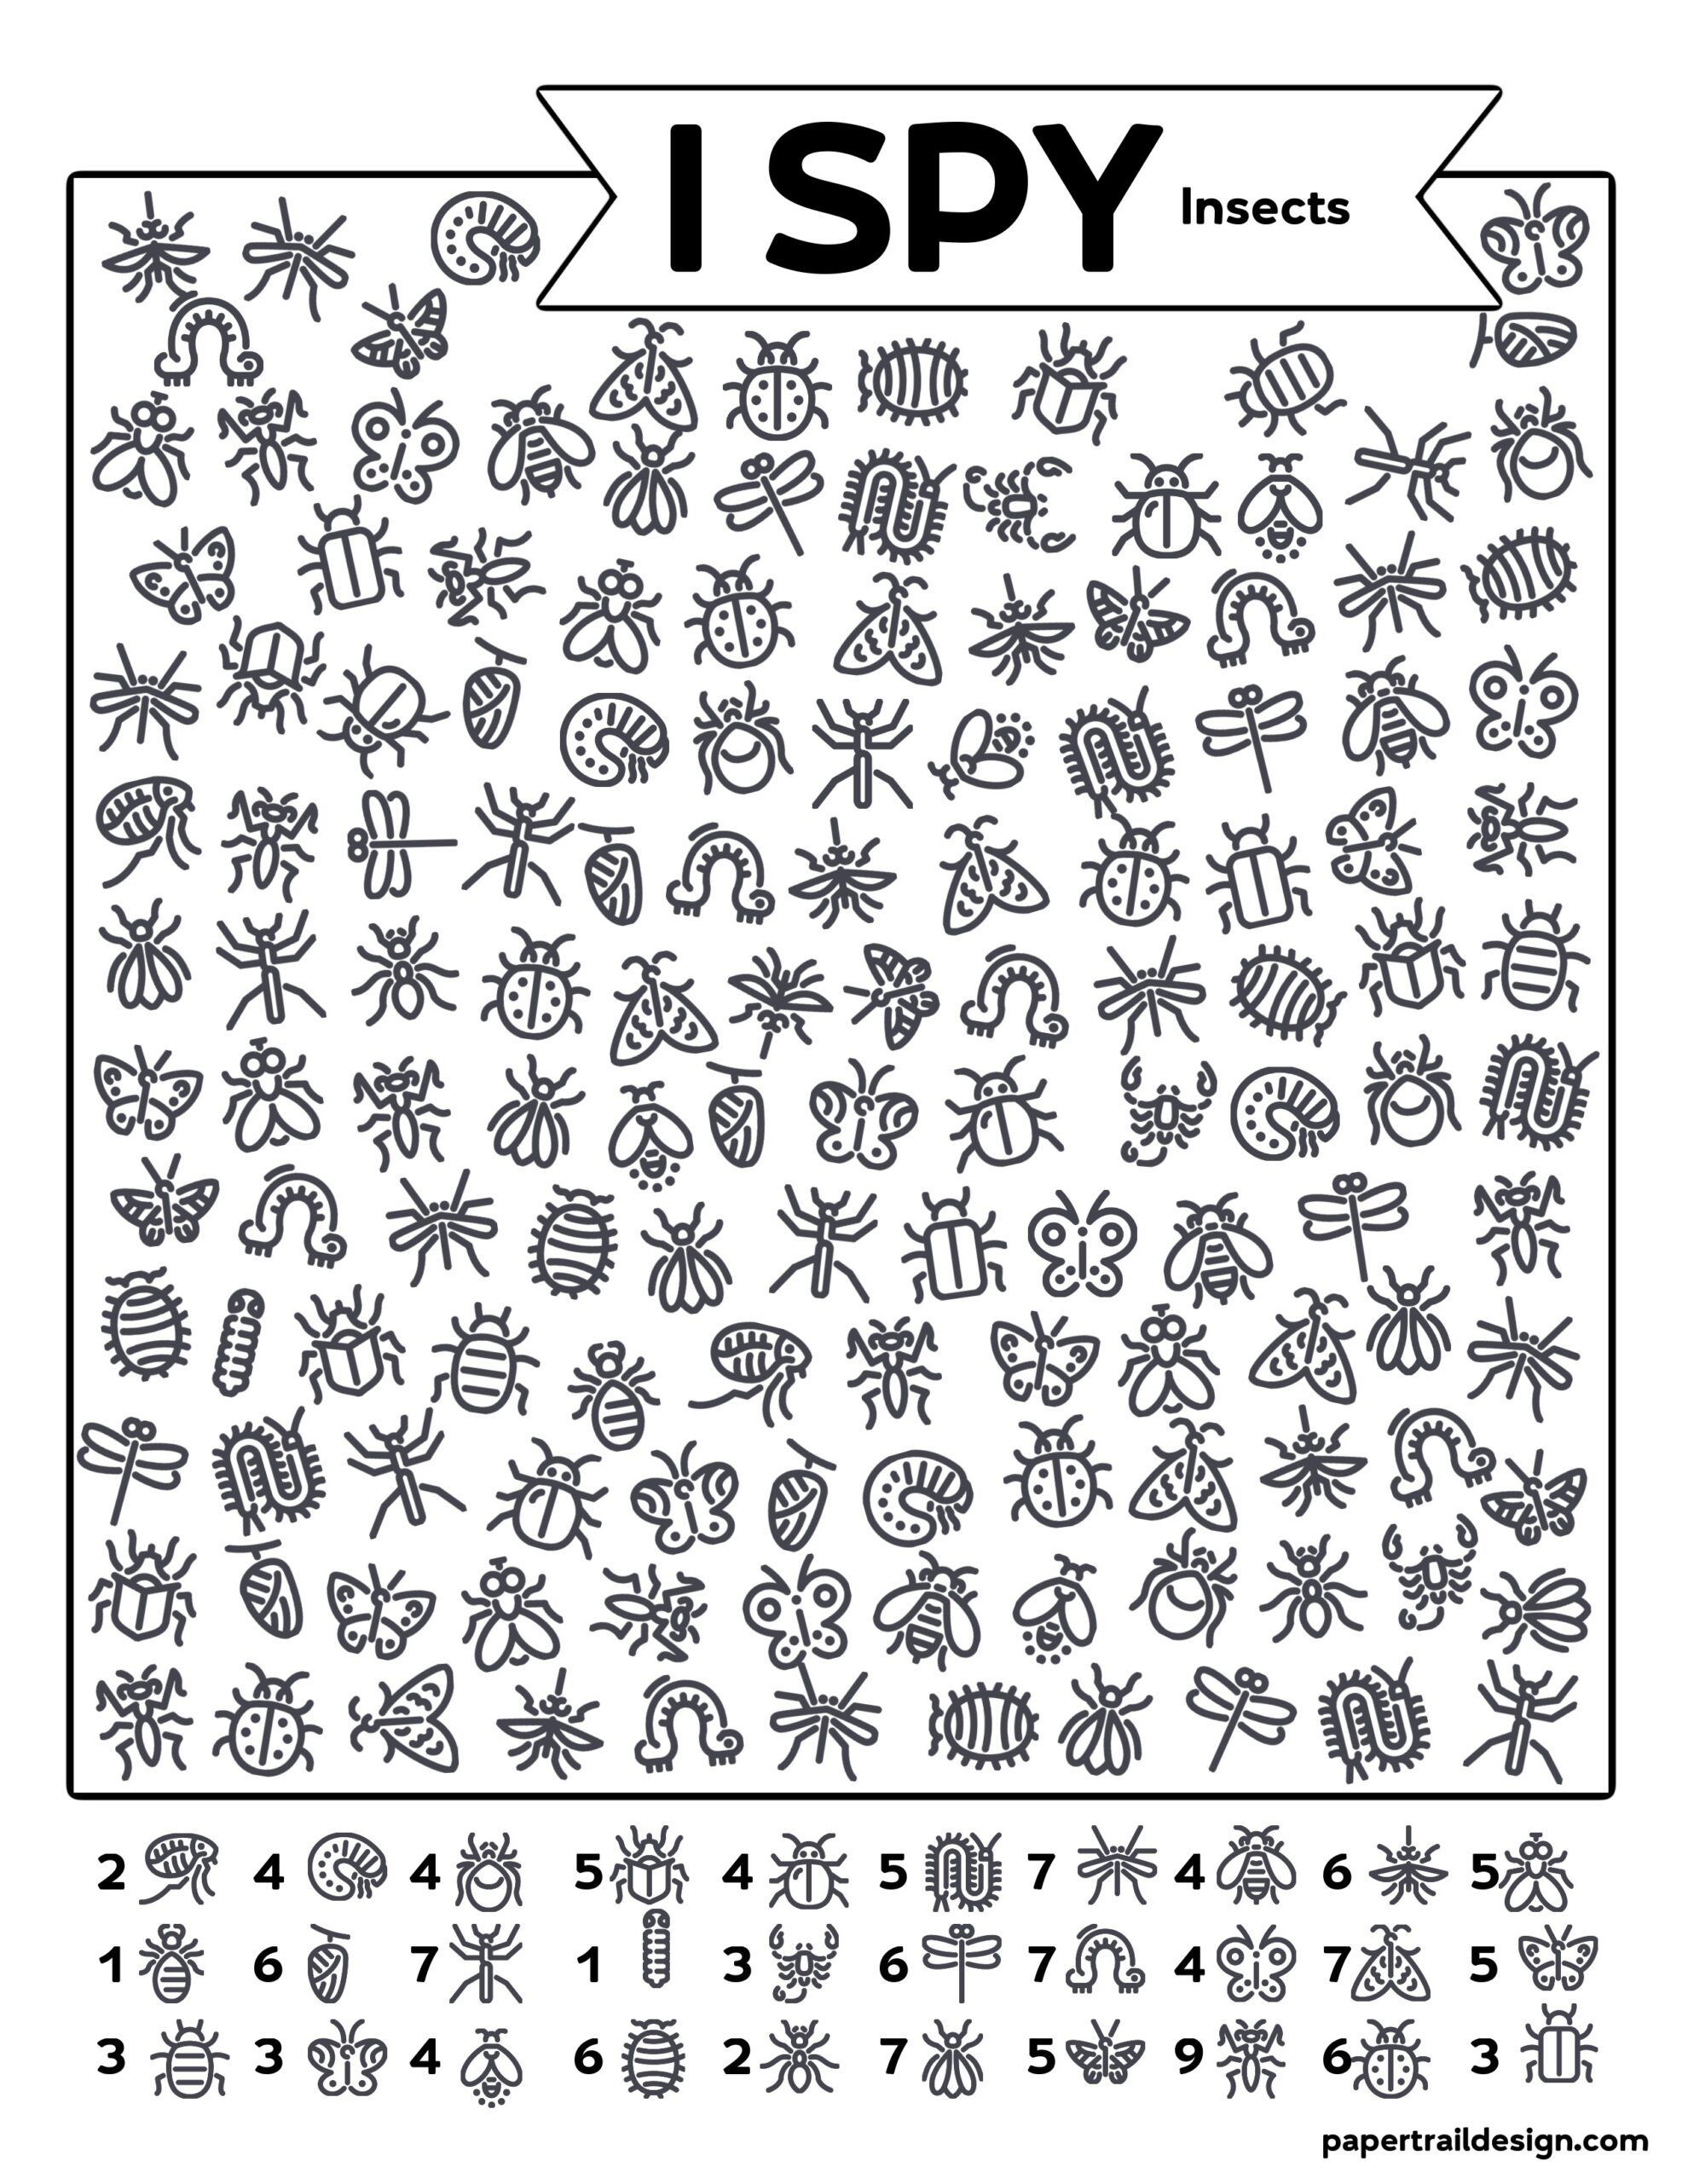 Free Printable I Spy Insects Activity | Paper Trail Design ...